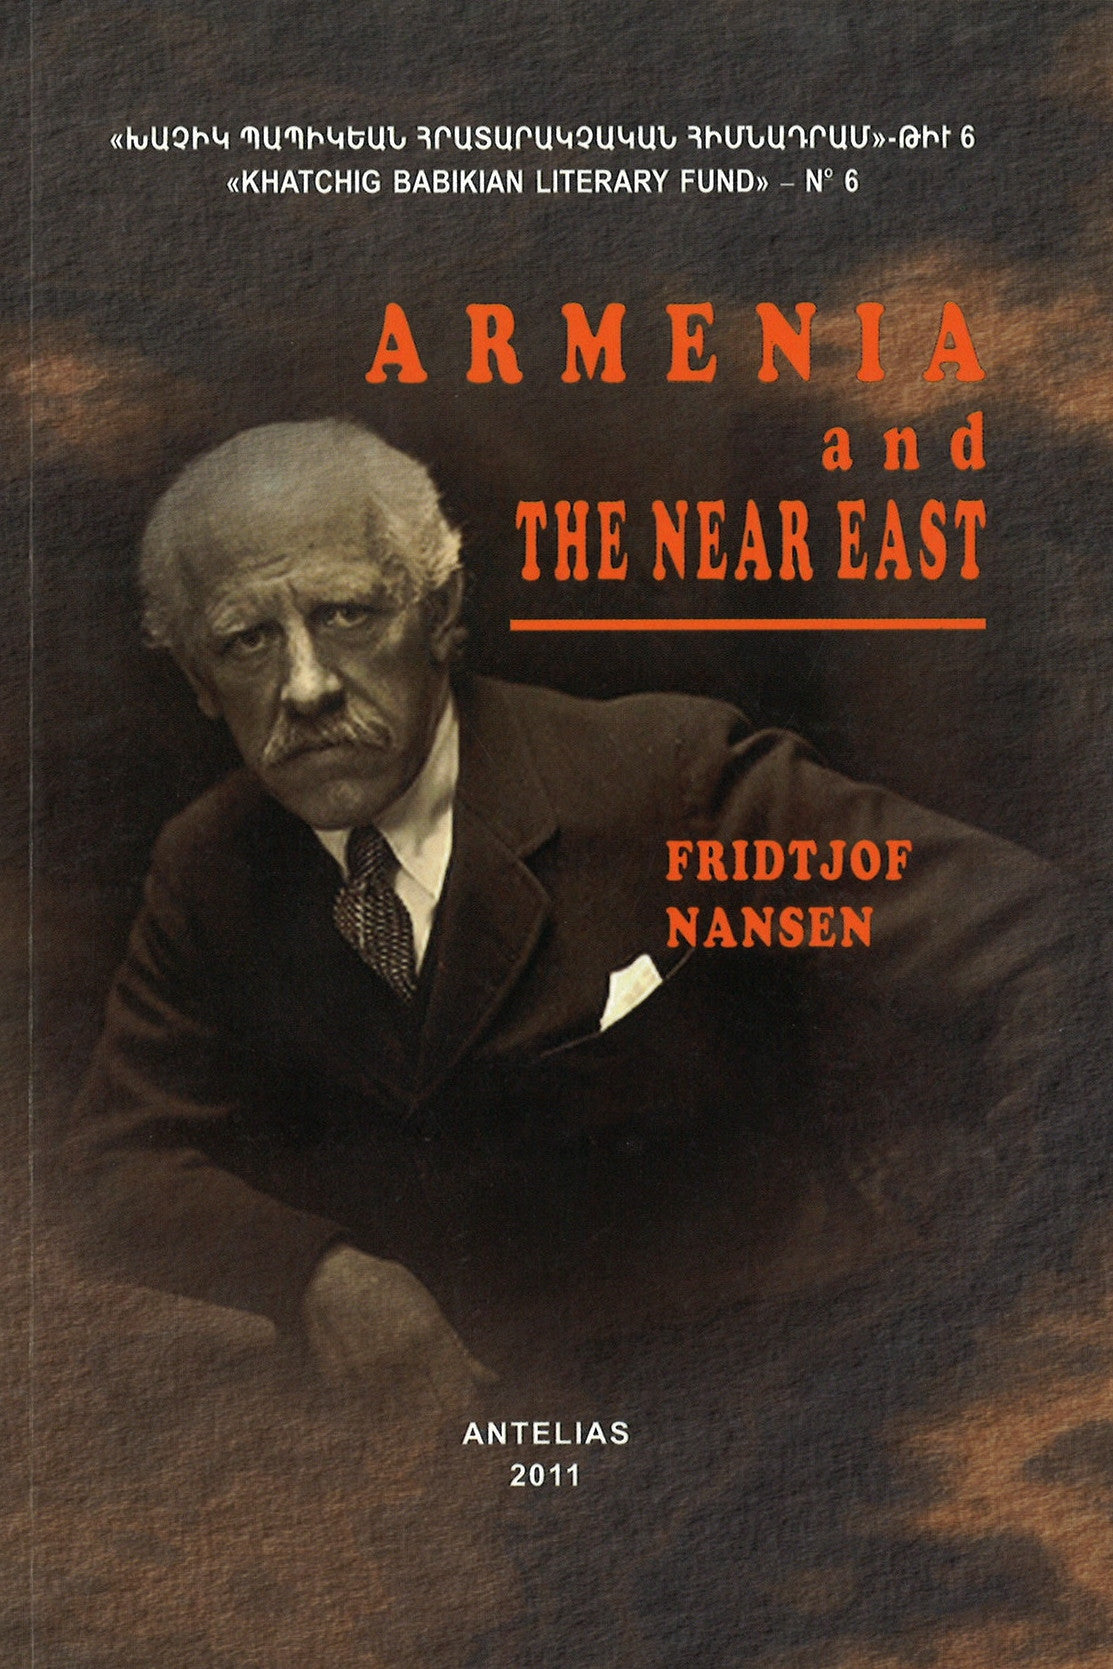 ARMENIA AND THE NEAR EAST